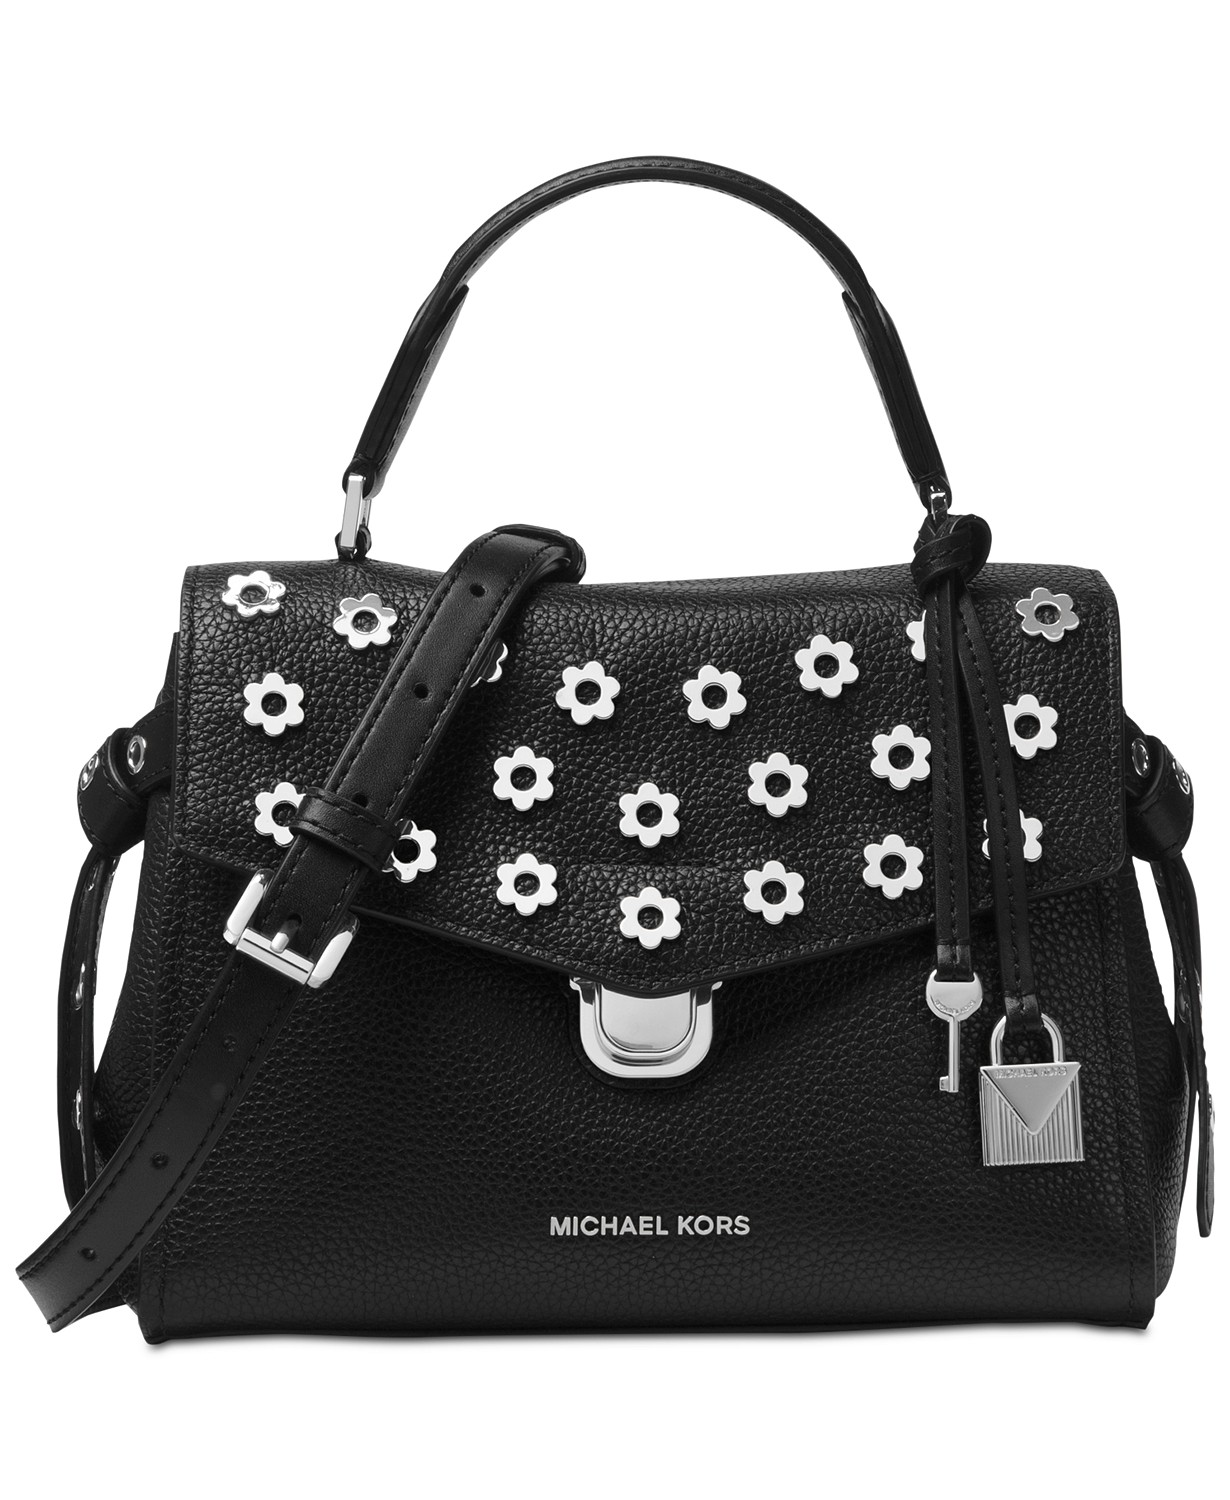 Michael Kors Bristol Top-Handle Small Satchel